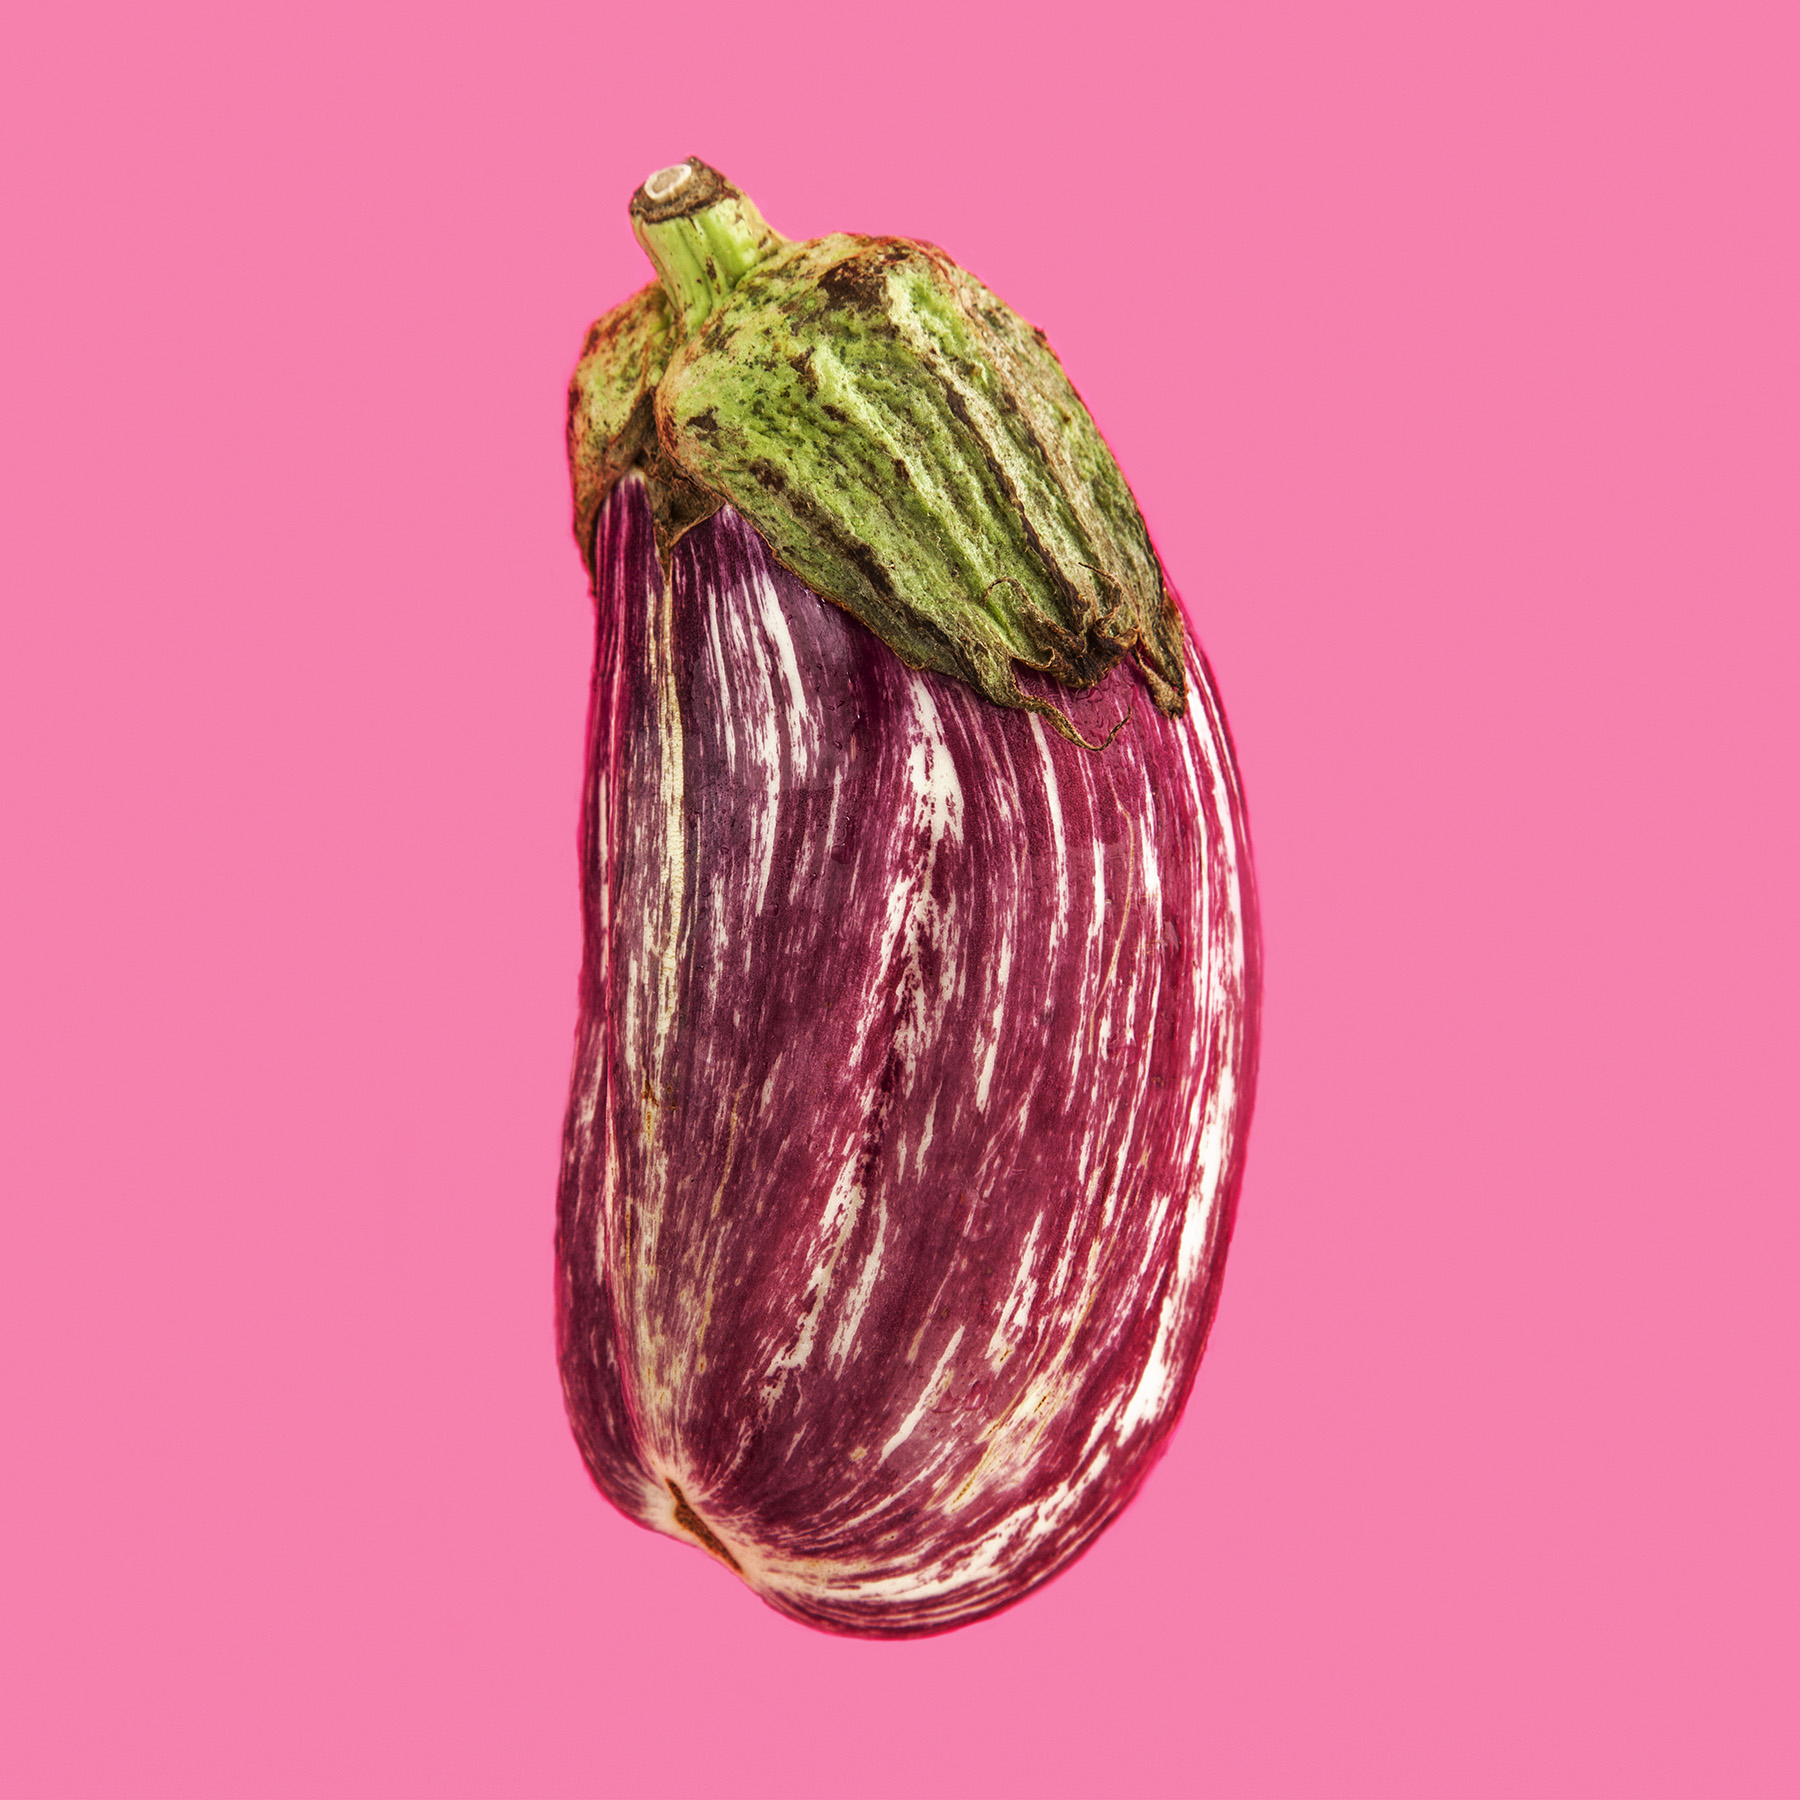 EGGPLANT PURPLE STRIPPED THE HICKORIES FARM ORGANIC FOOD VEGETABLE © JONATHAN R. BECKERMAN PHOTOGRAPHY.jpg